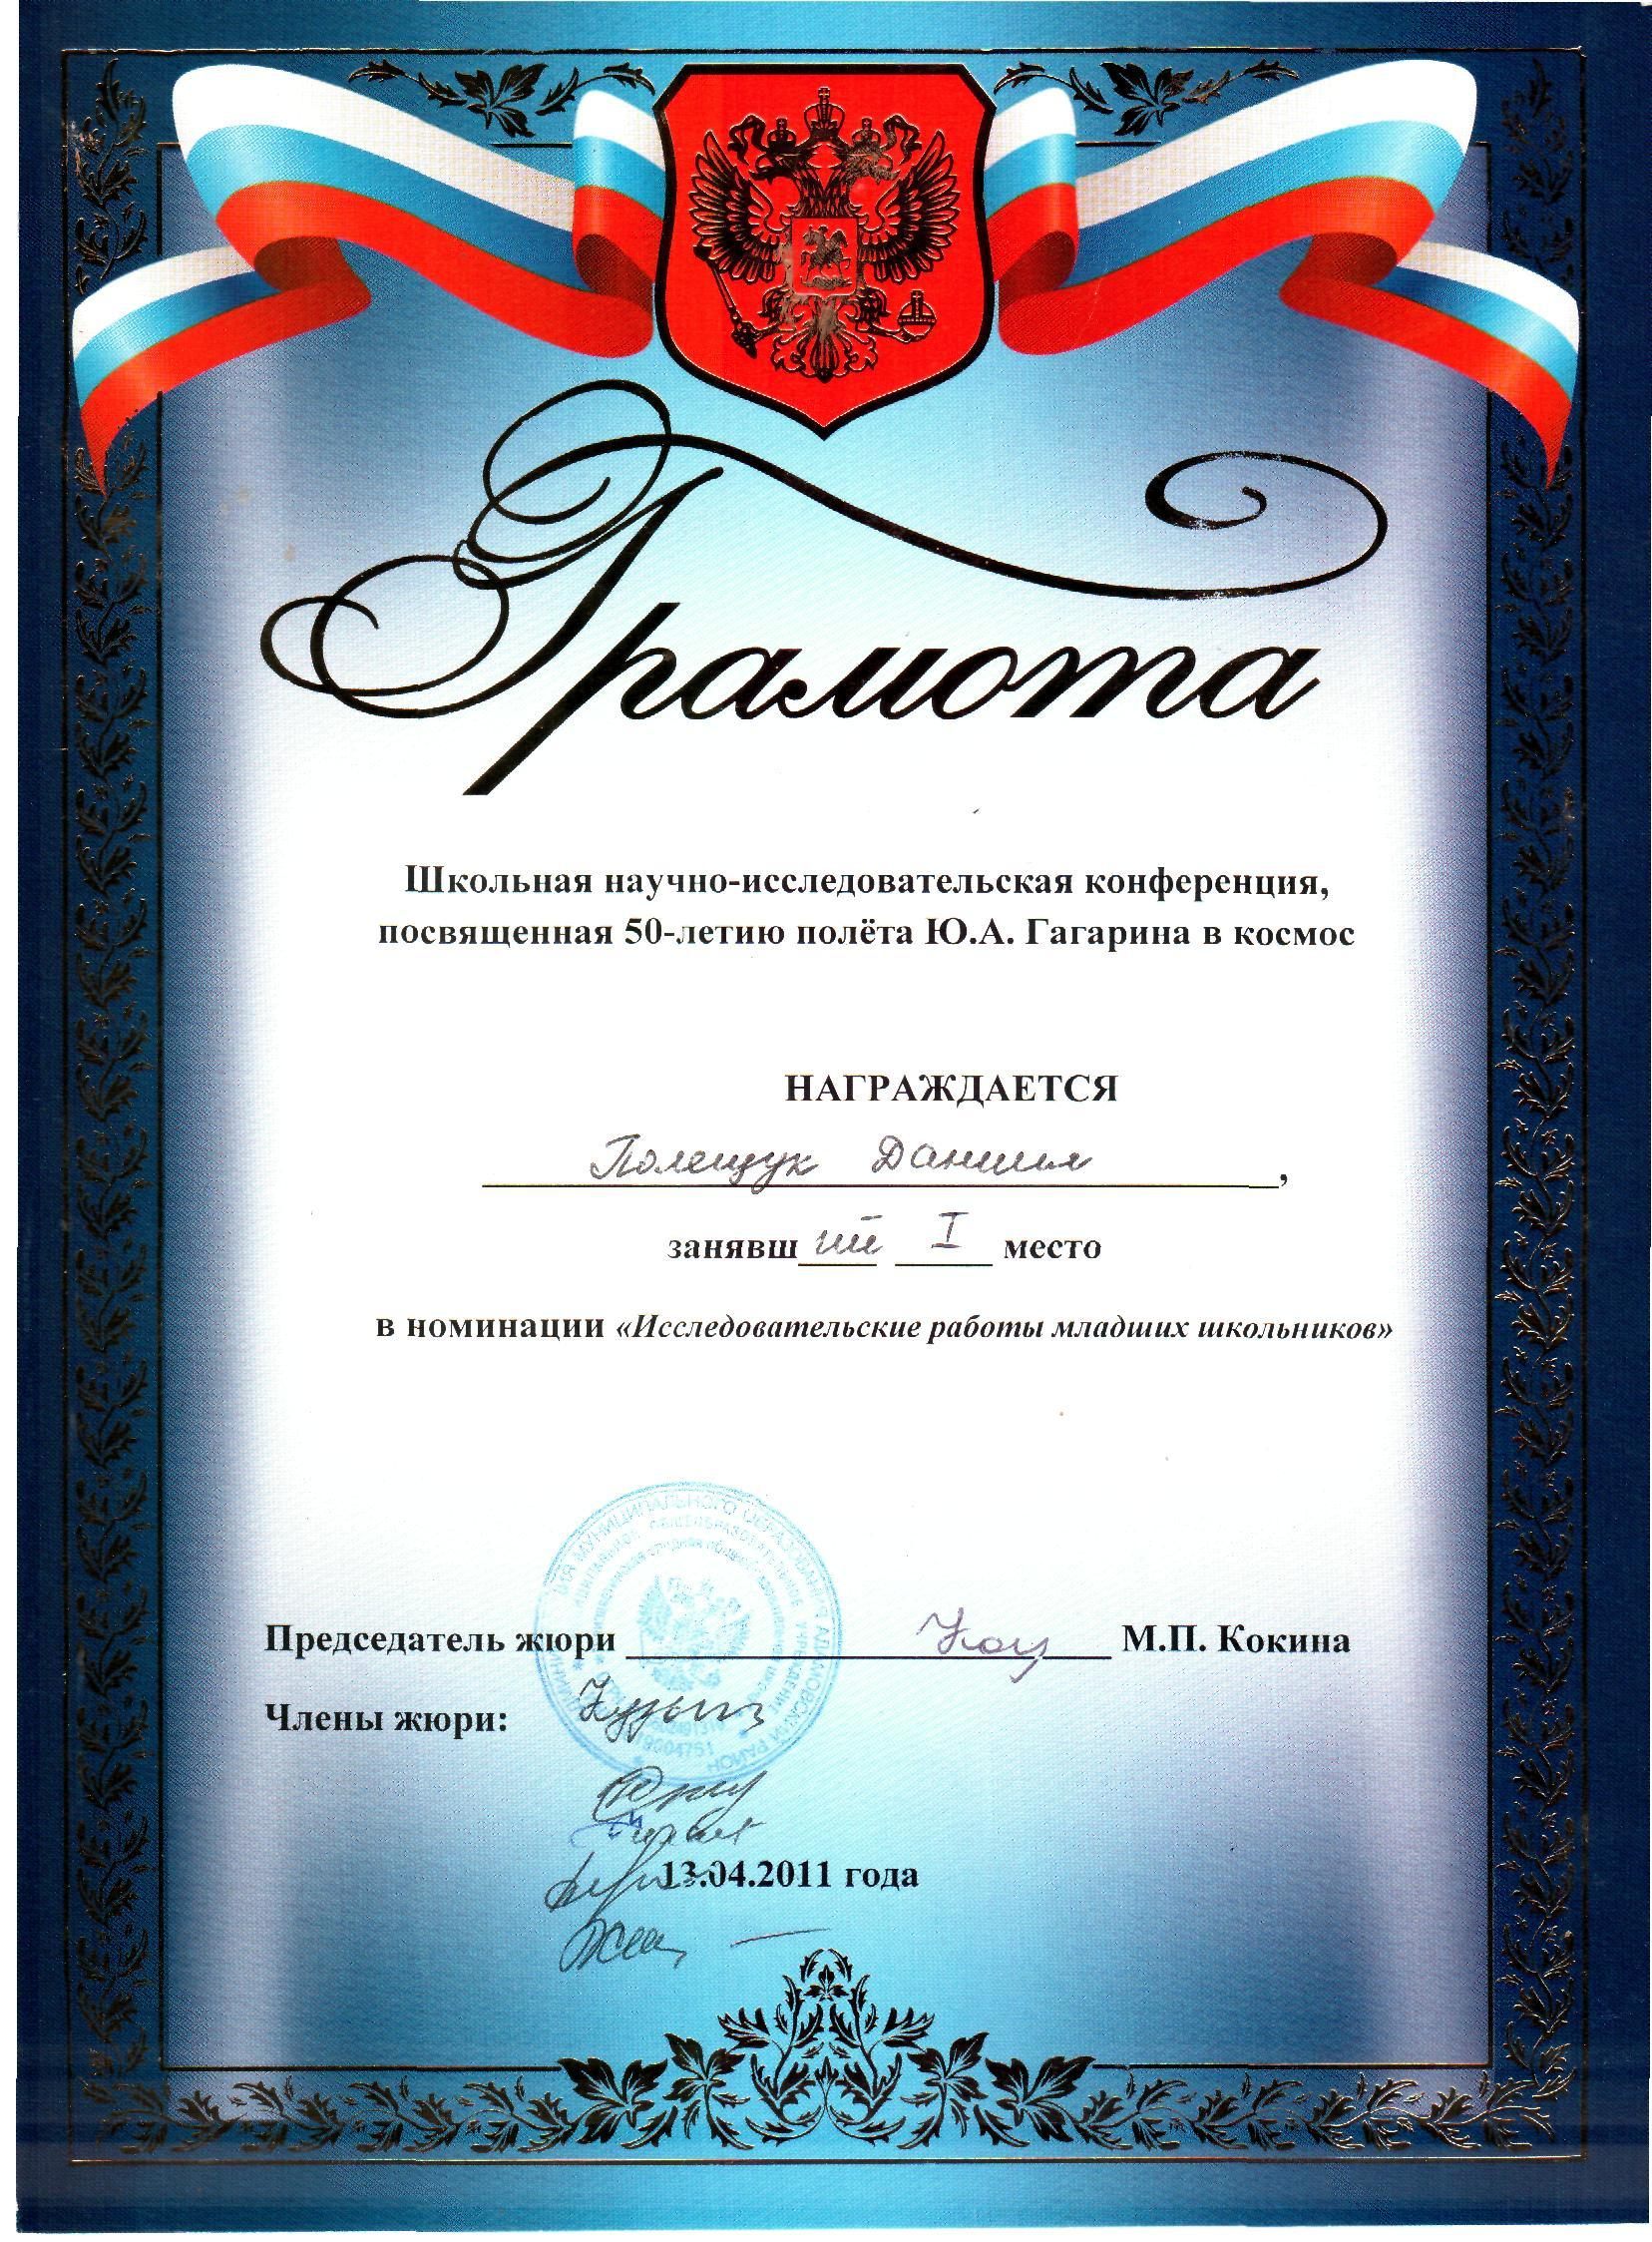 C:\Documents and Settings\User.USER-A1DBA845B9\Мои документы\Файлы Mail.Ru Агента\sergei_752@mail.ru\helios84@mail.ru\ков0007.jpg